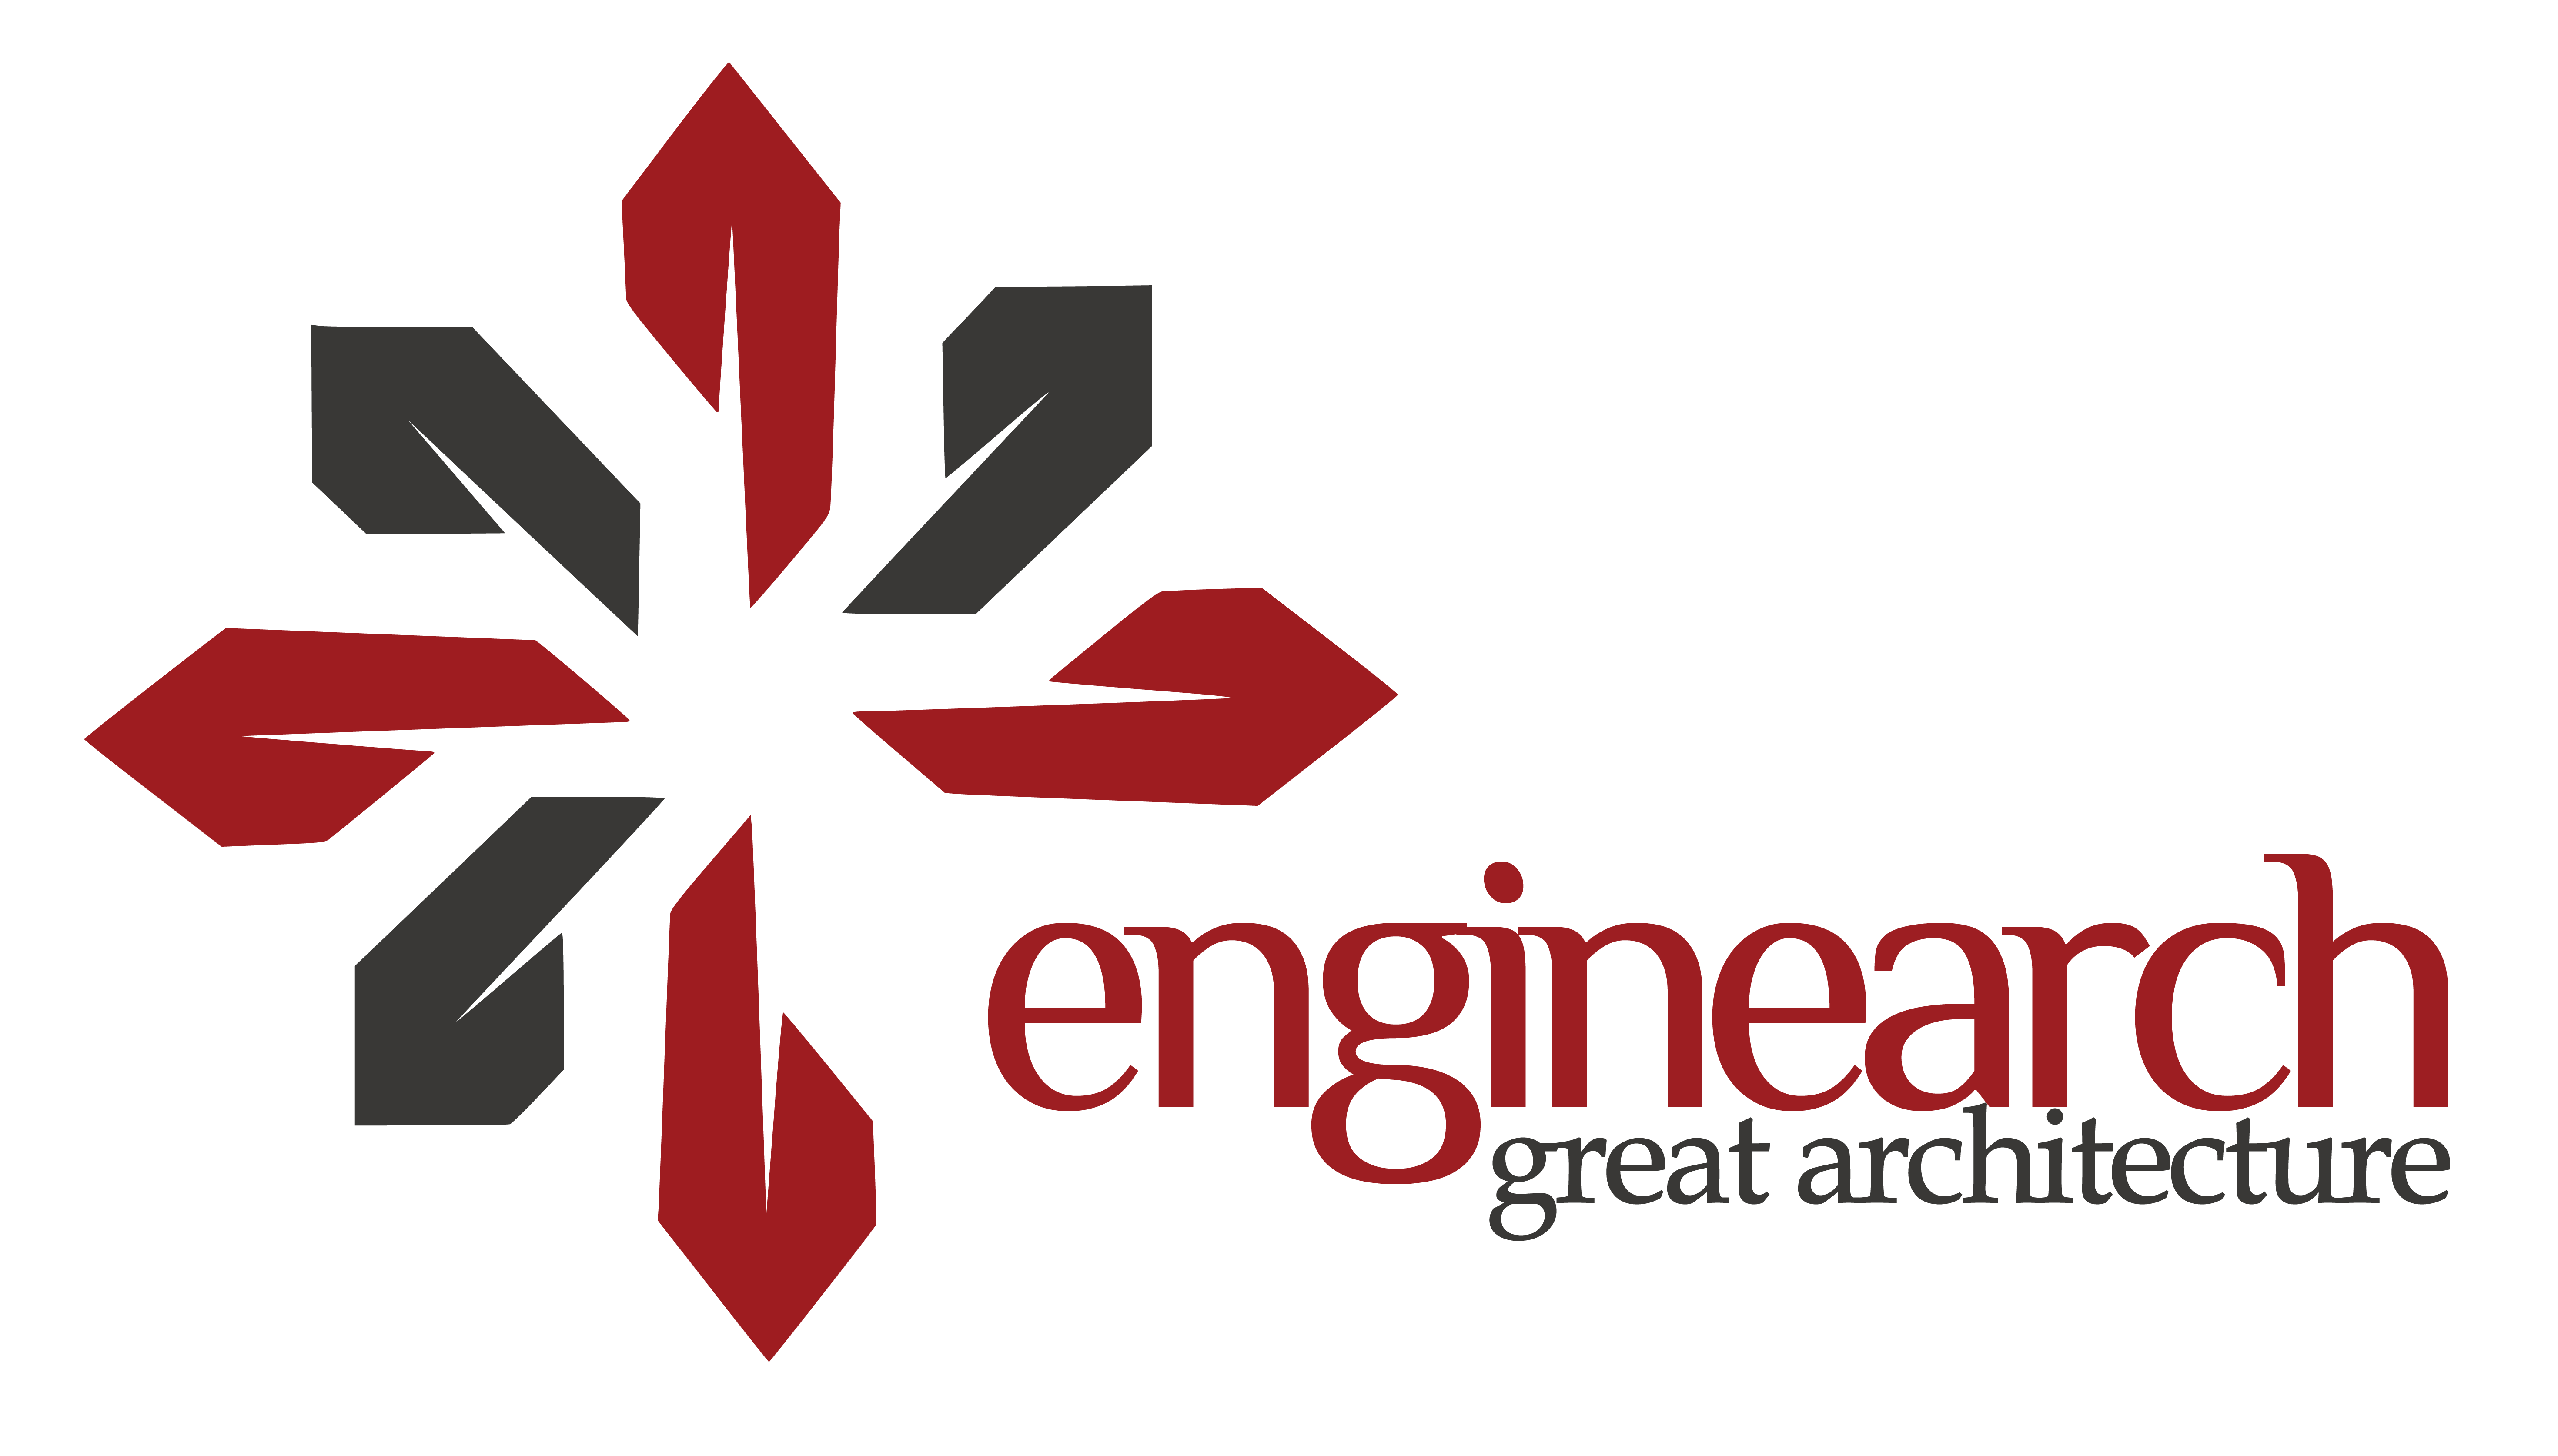 enginearch